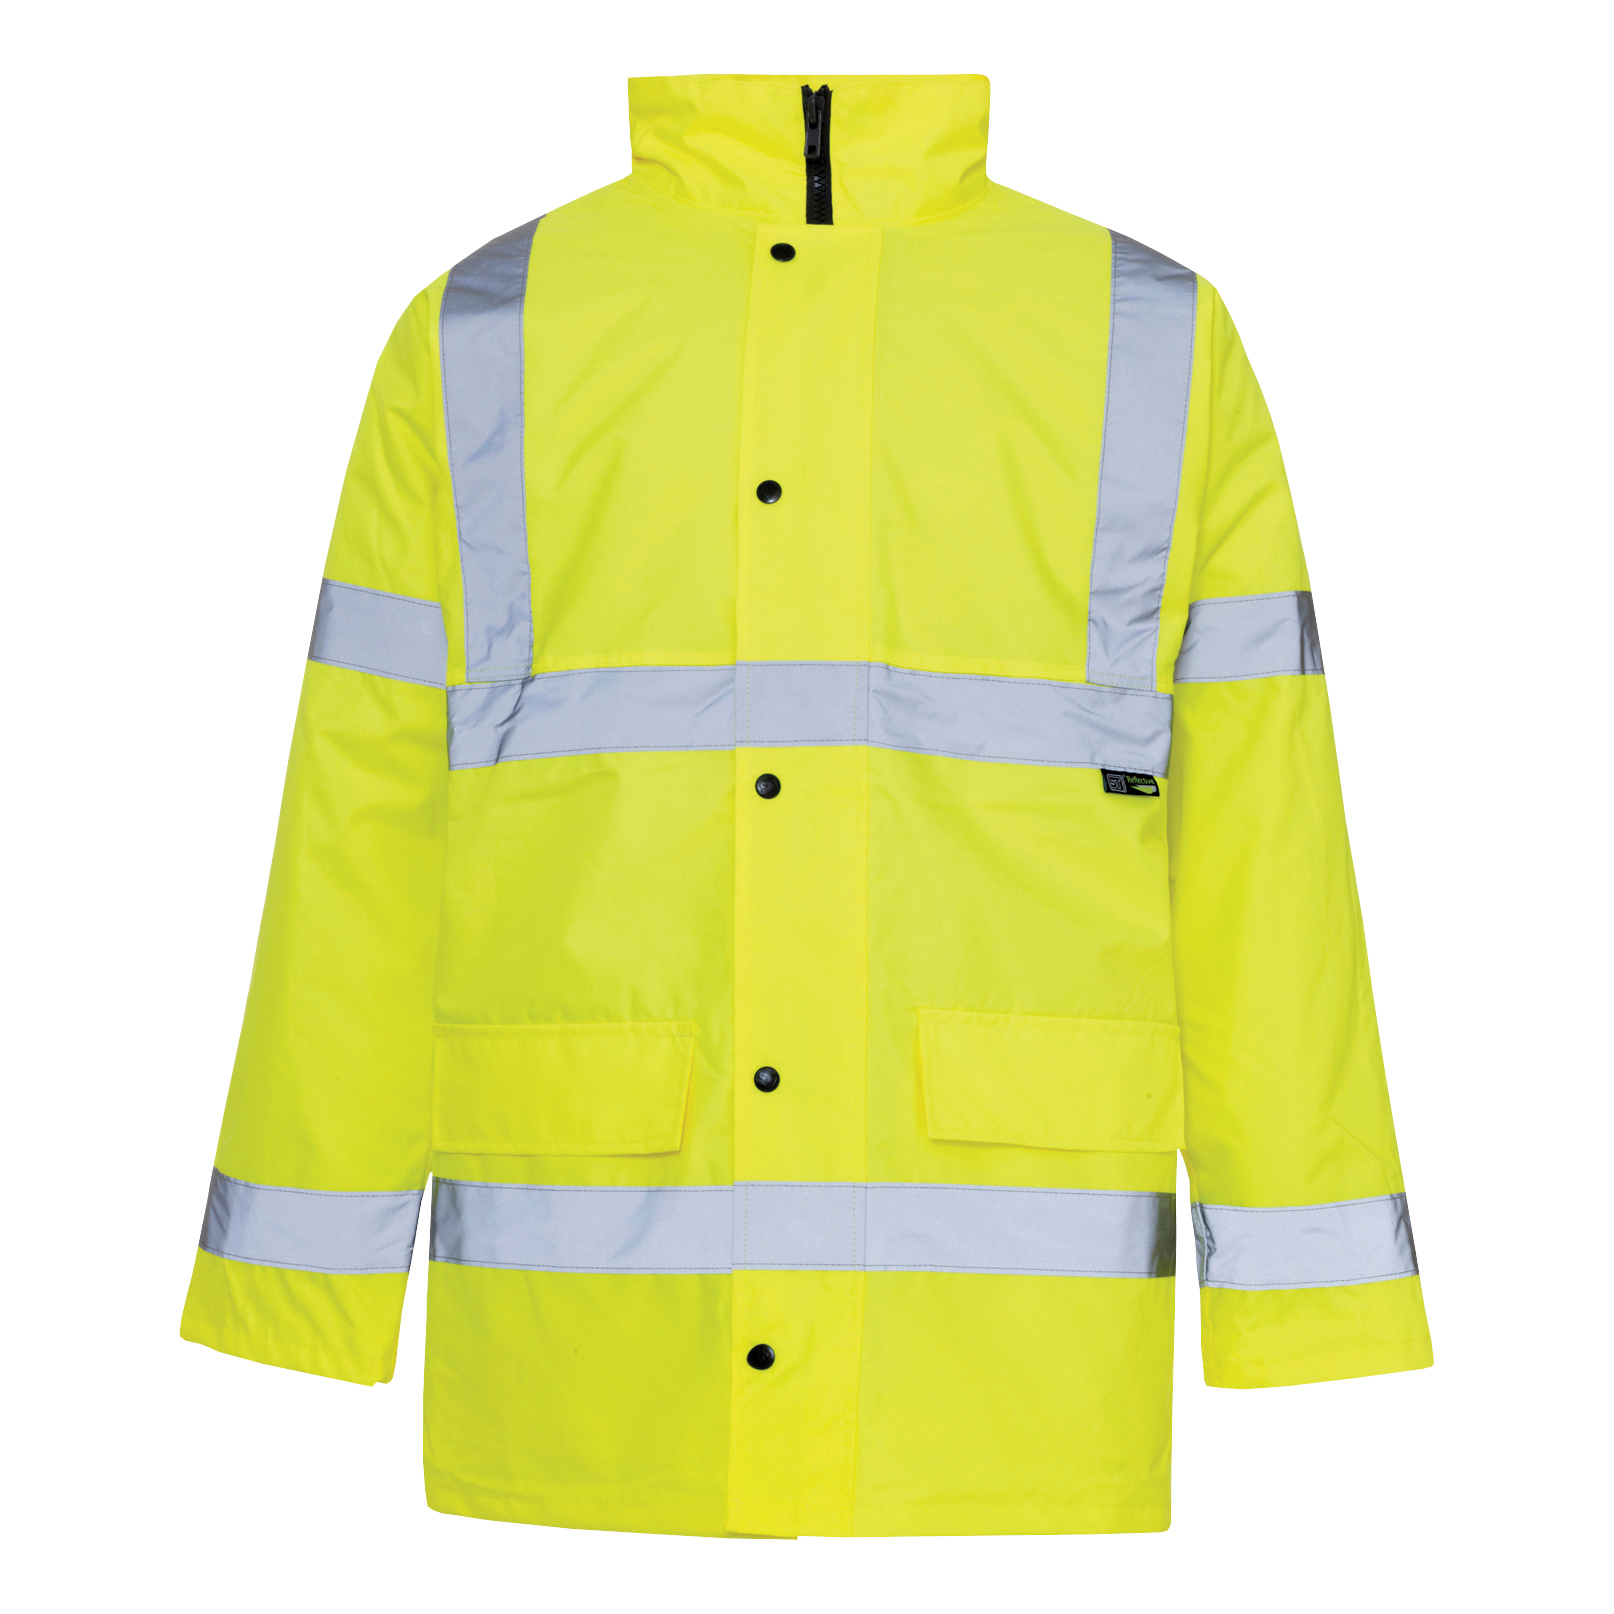 High Vis Standard Parka with 2-Way Zip Fastening XL Yellow Approx 3 Day Leadtime